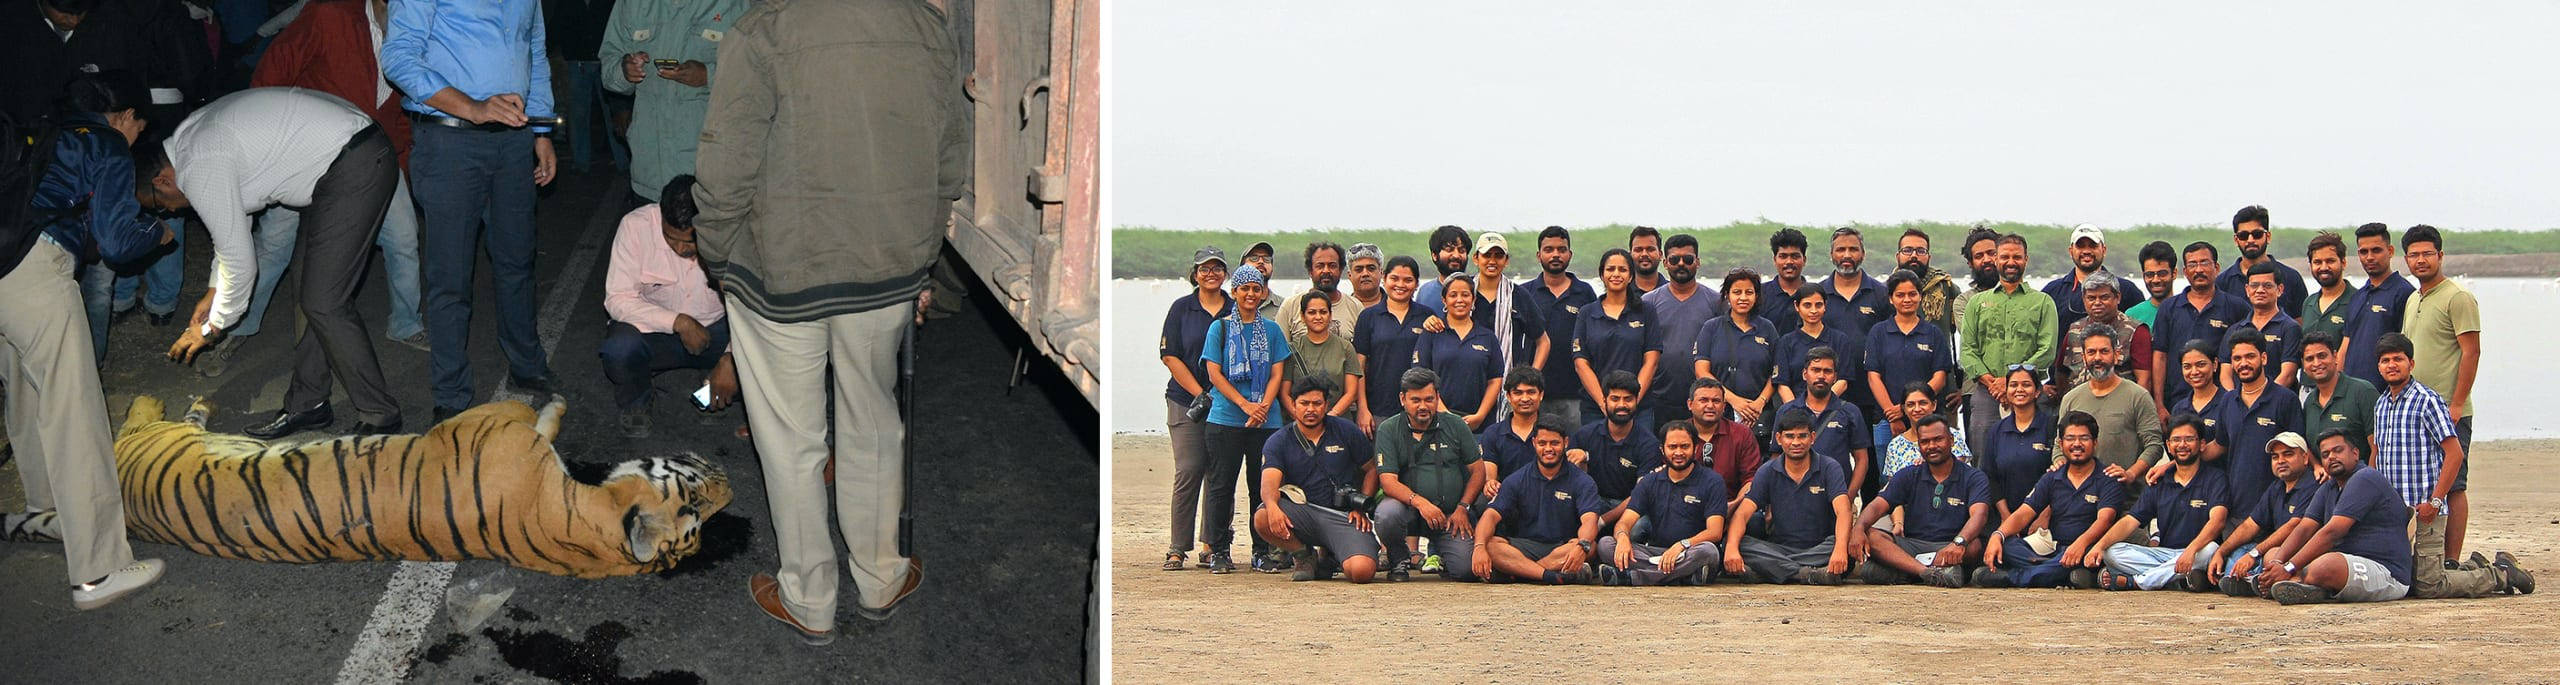 (Left) Anish Andheria attends to a tiger roadkill. (Right) Anish Andheria with his WCT team.  Photos courtesy: Sheetal Kolhe/WCT (left), WCT (right)